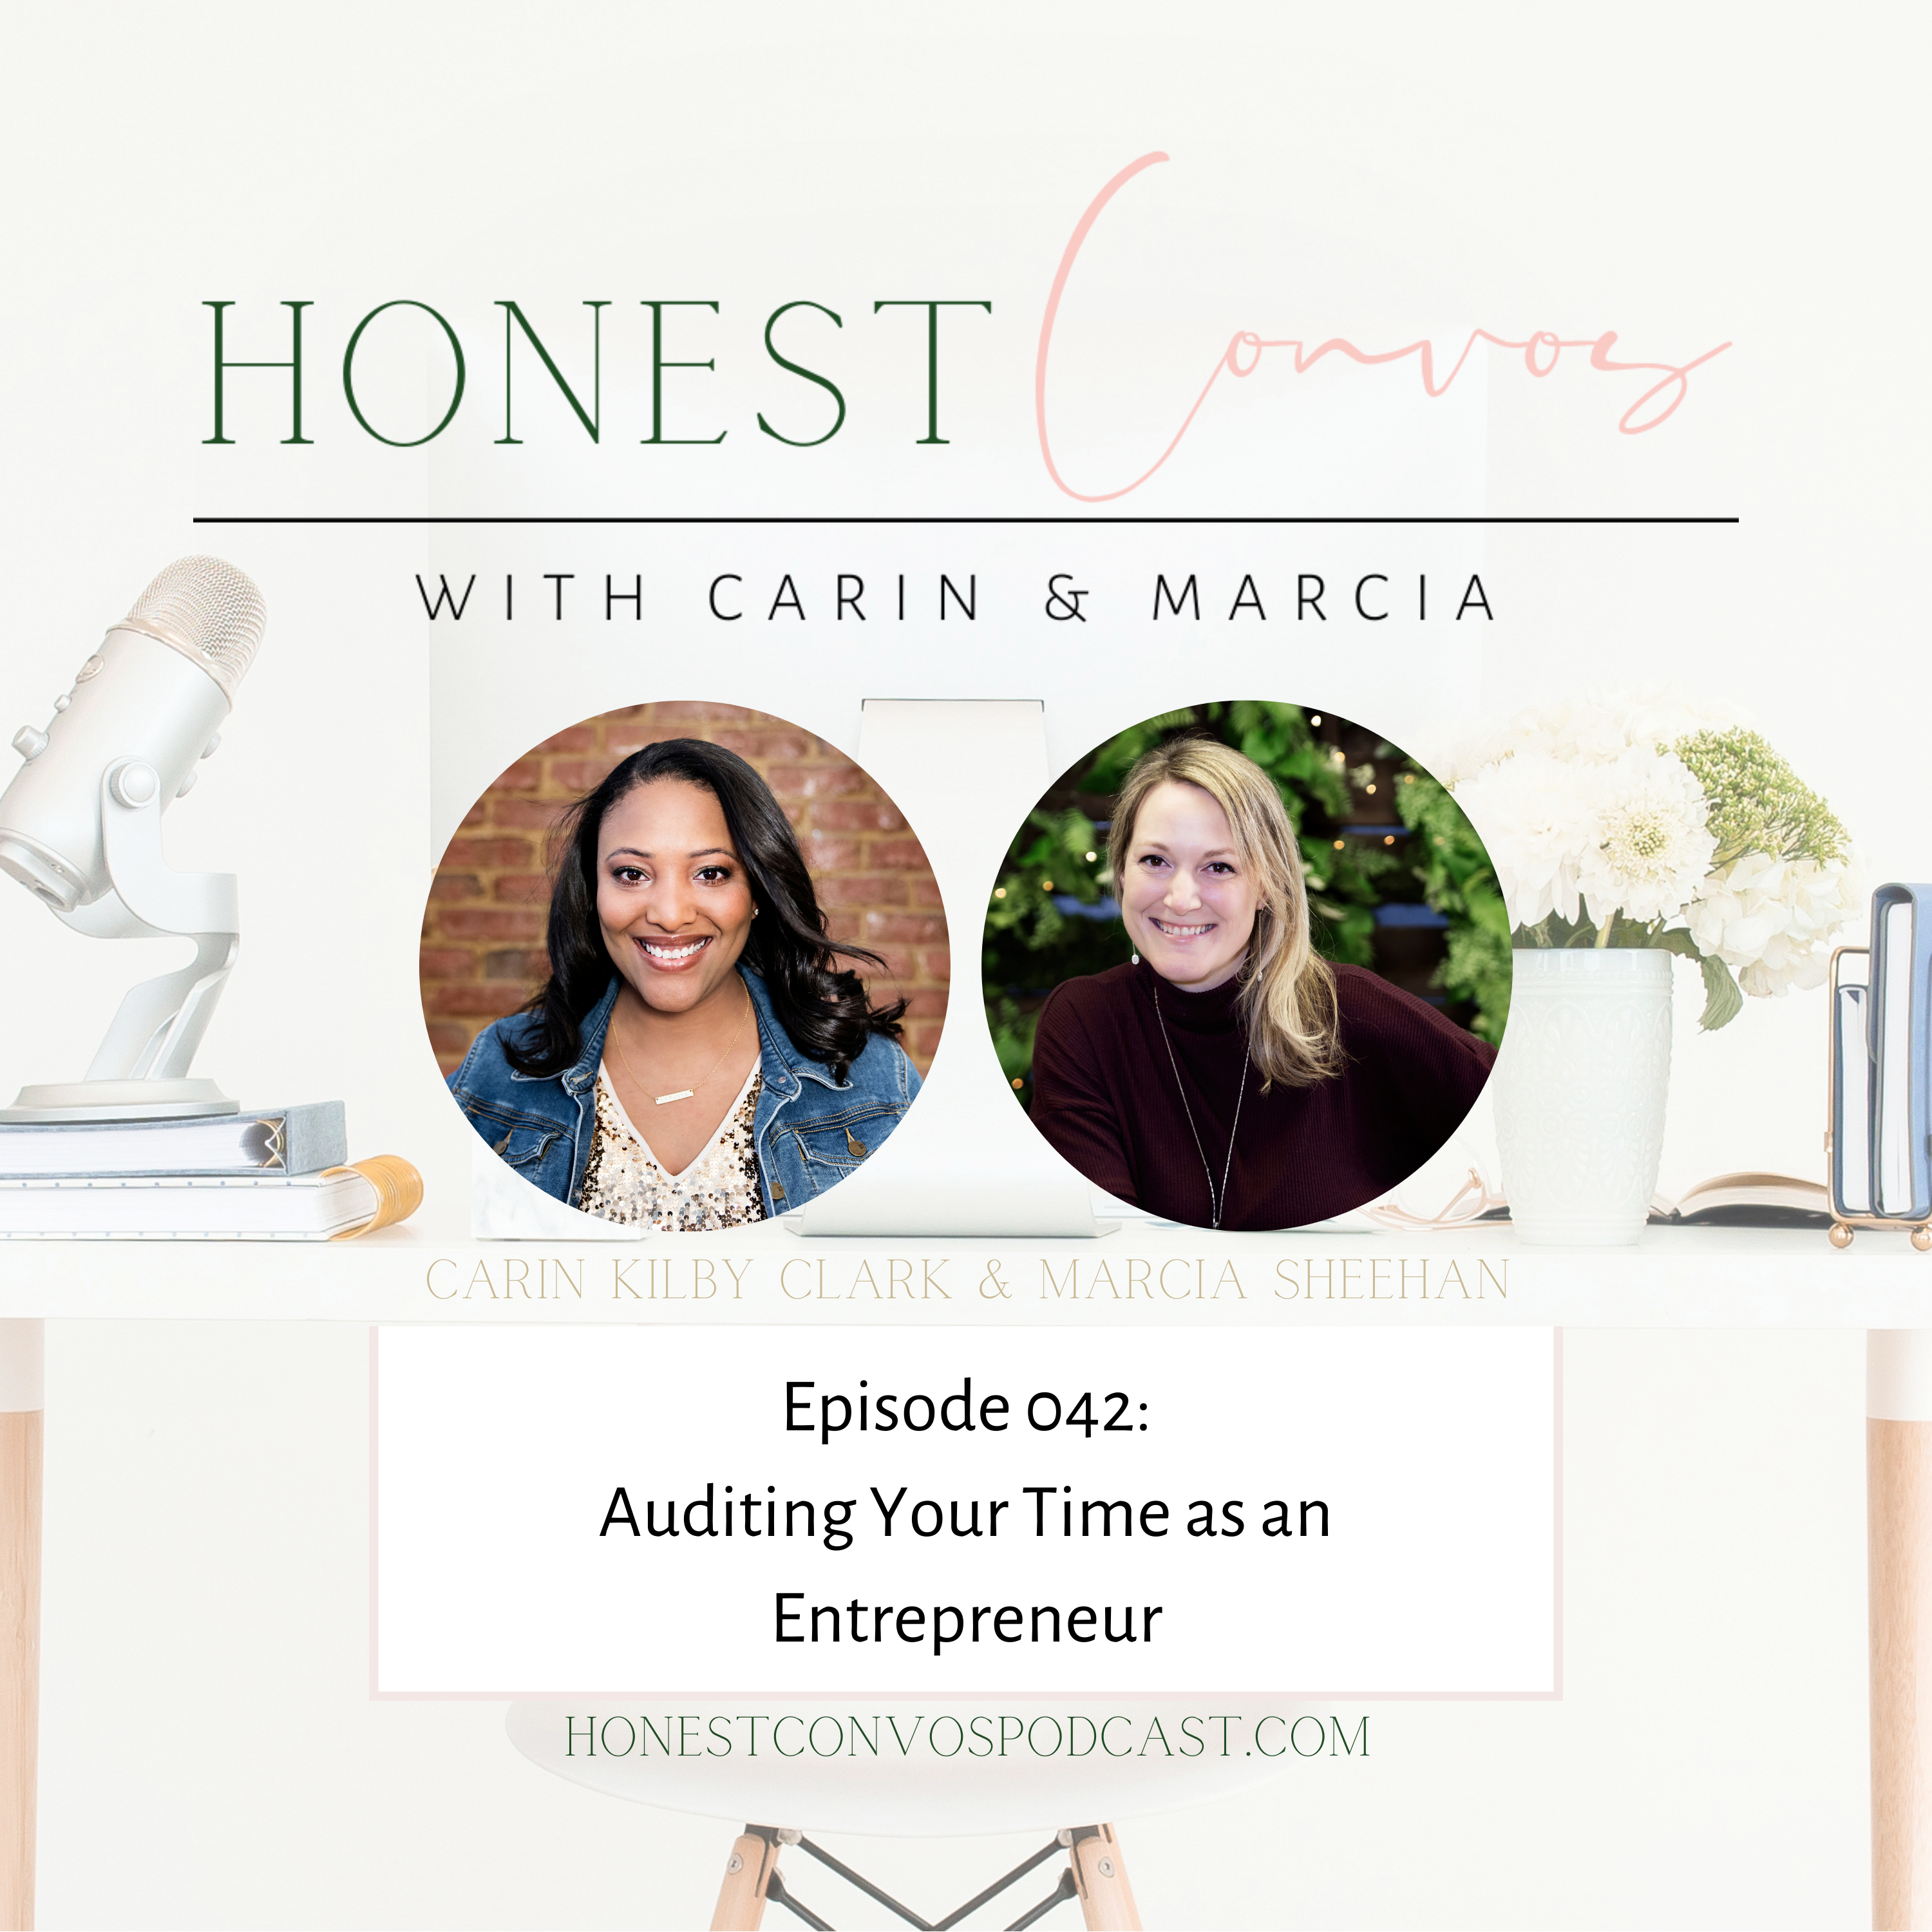 Auditing Your Time as an Entrepreneur